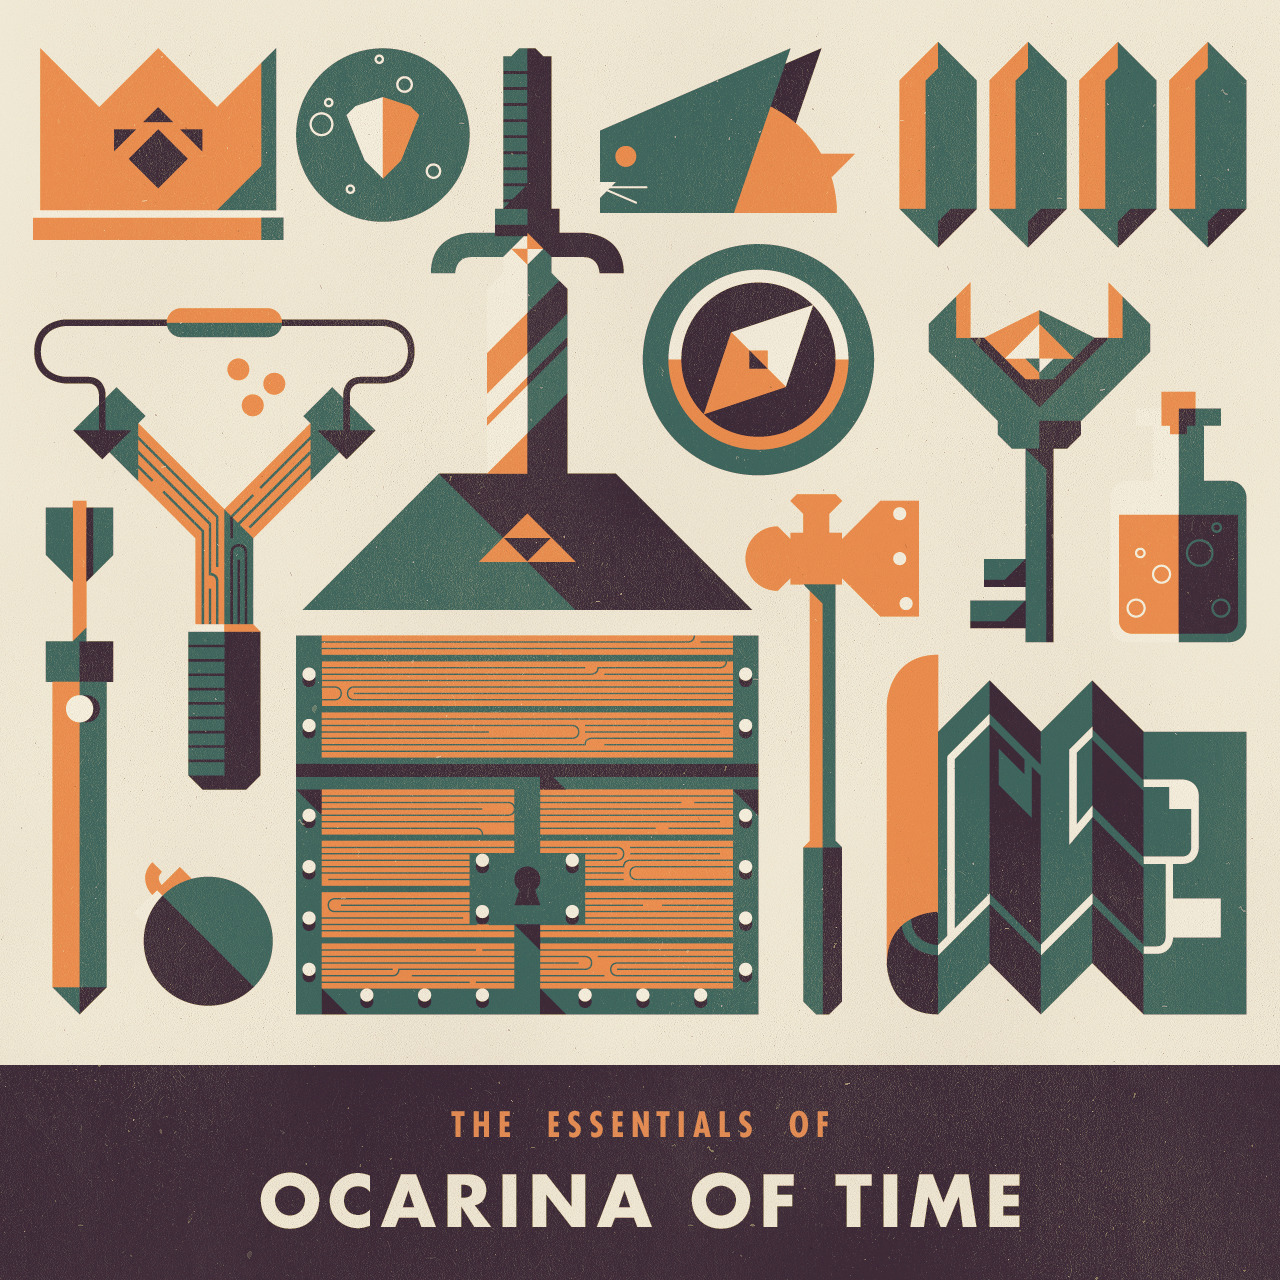 The Essentials of The Ocarina of Time by Justin Mezzell